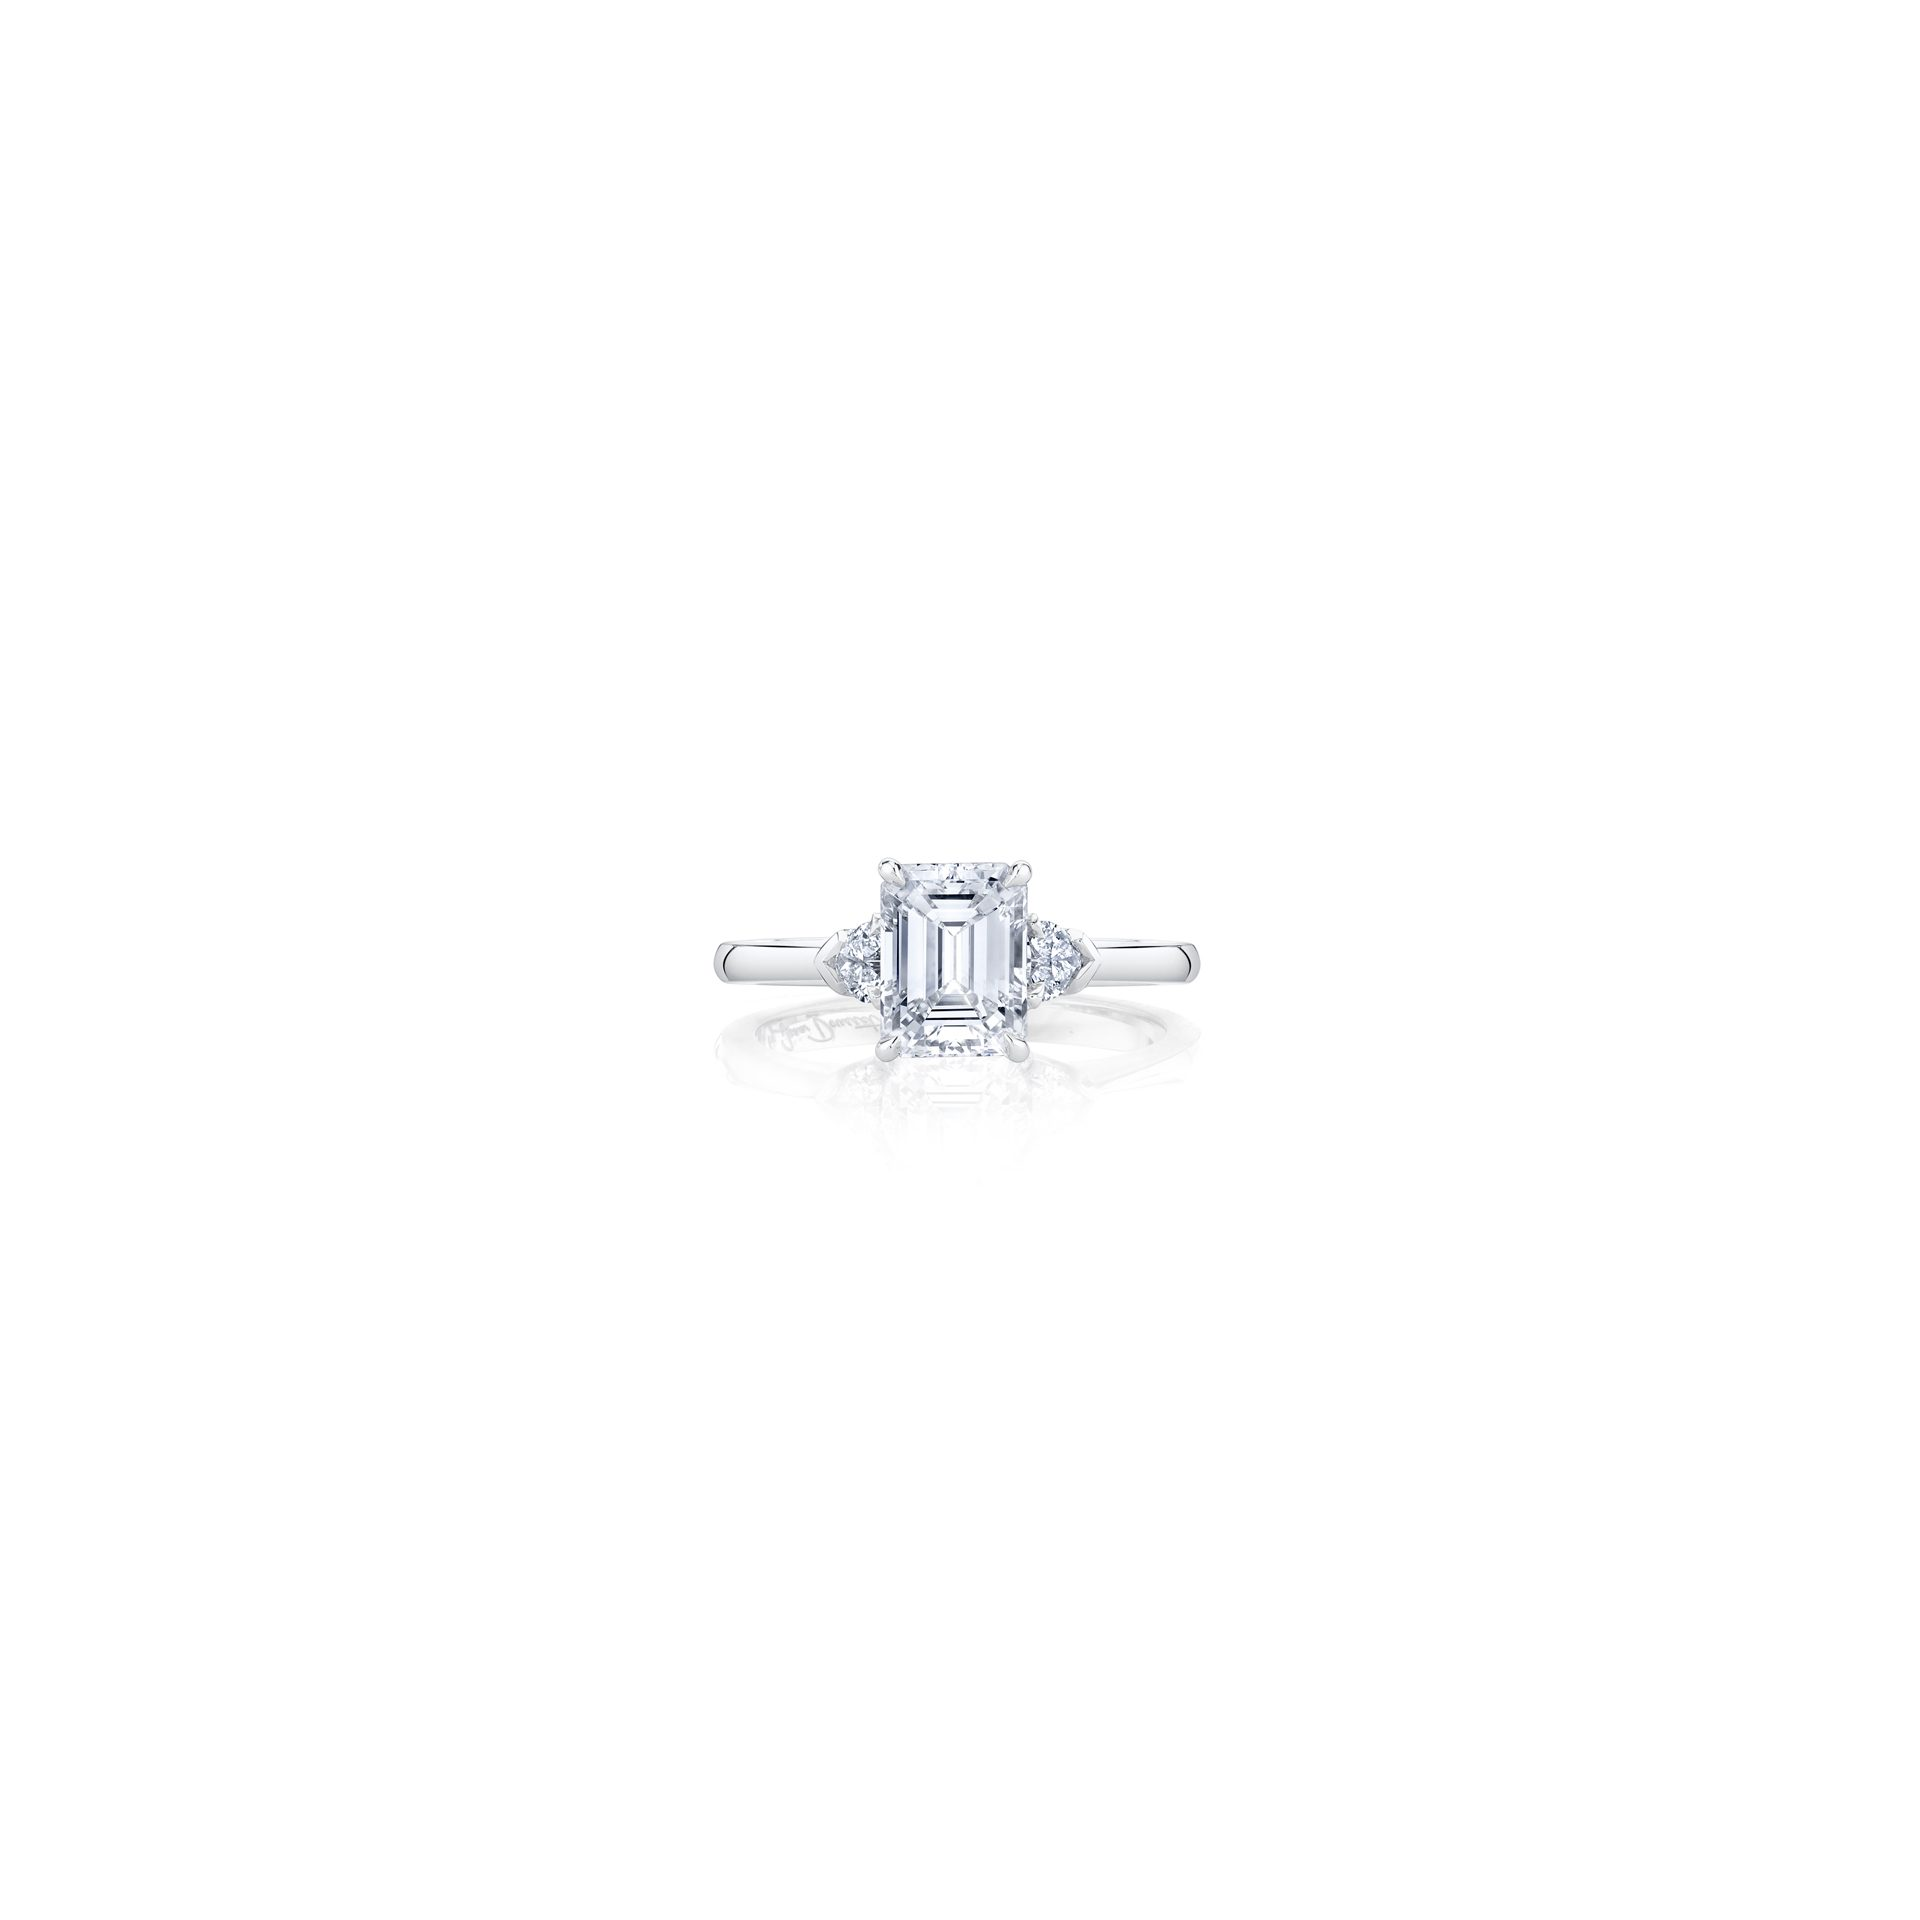 Claire Emerald Three Stone Engagement Ring with heart-shaped diamond side stones in 18k White Gold Front View by Oui by Jean Dousset